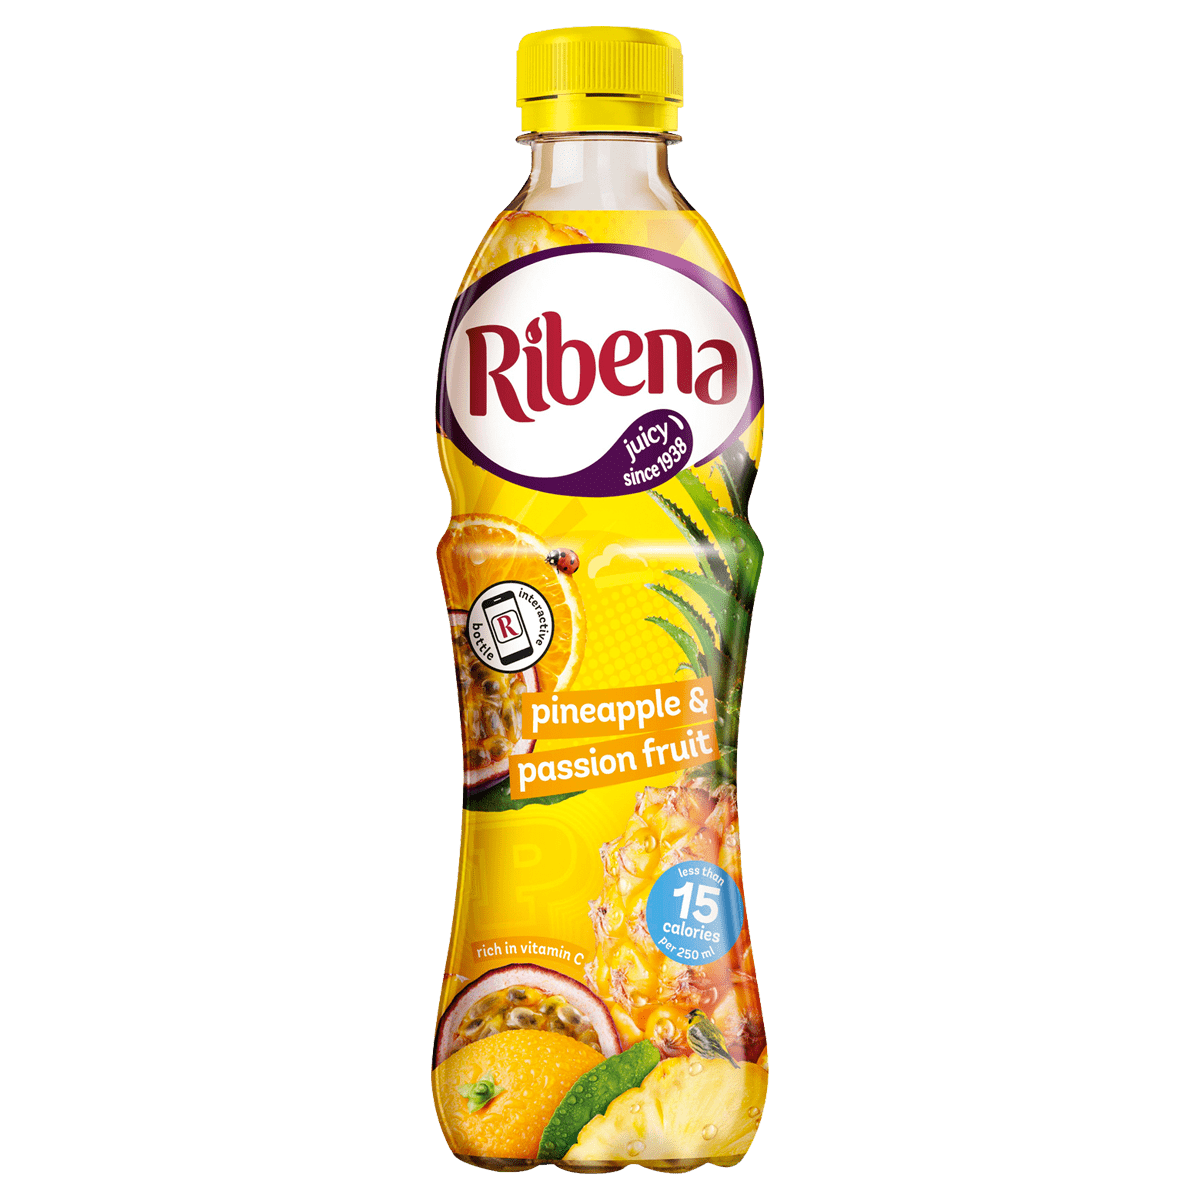 ribena light - pineapple & passion fruit